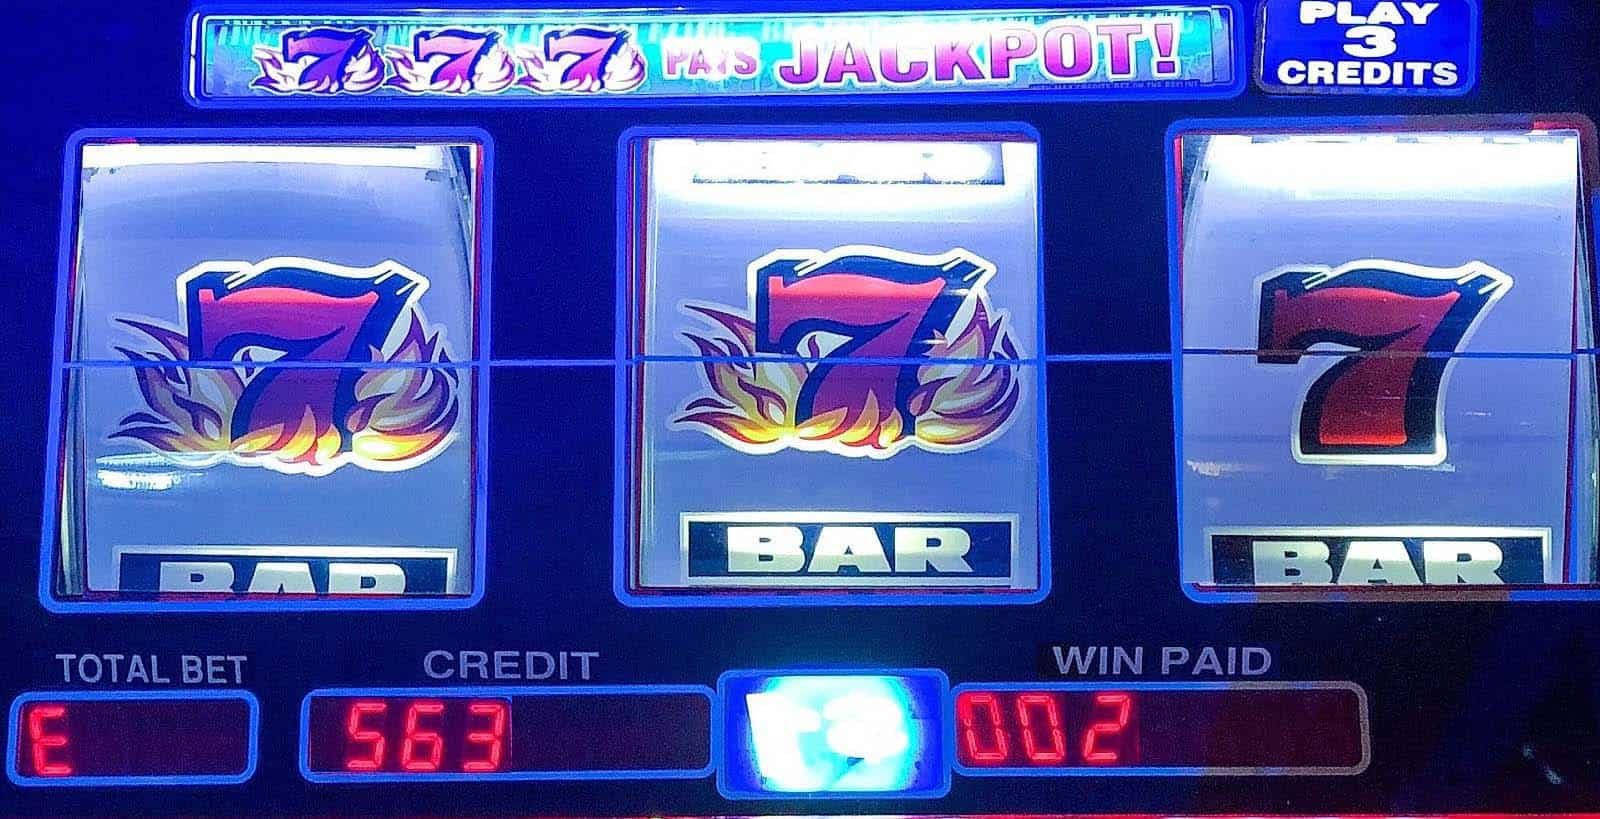 How to play slot machines? Learn the interface